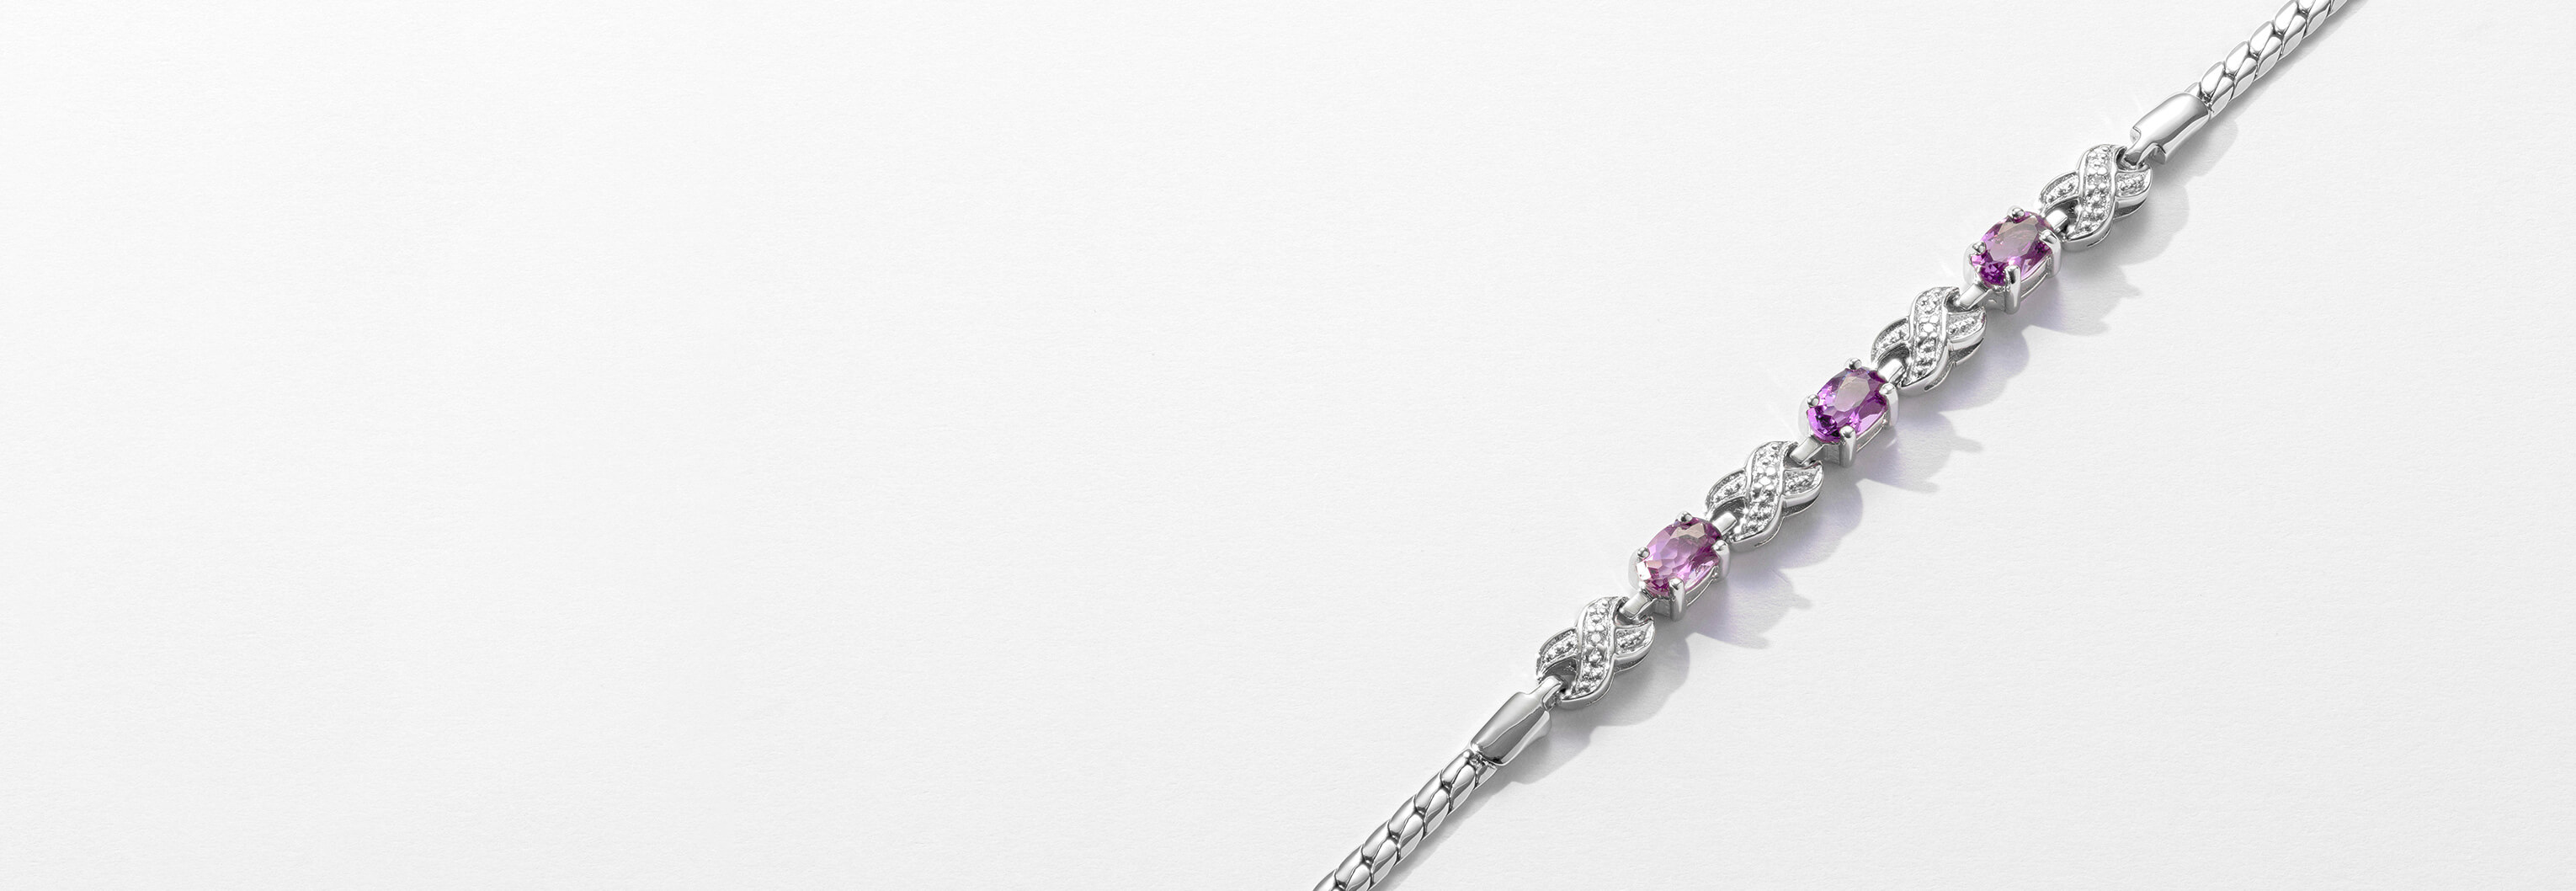 Amethyst February Birthstone Jewellery